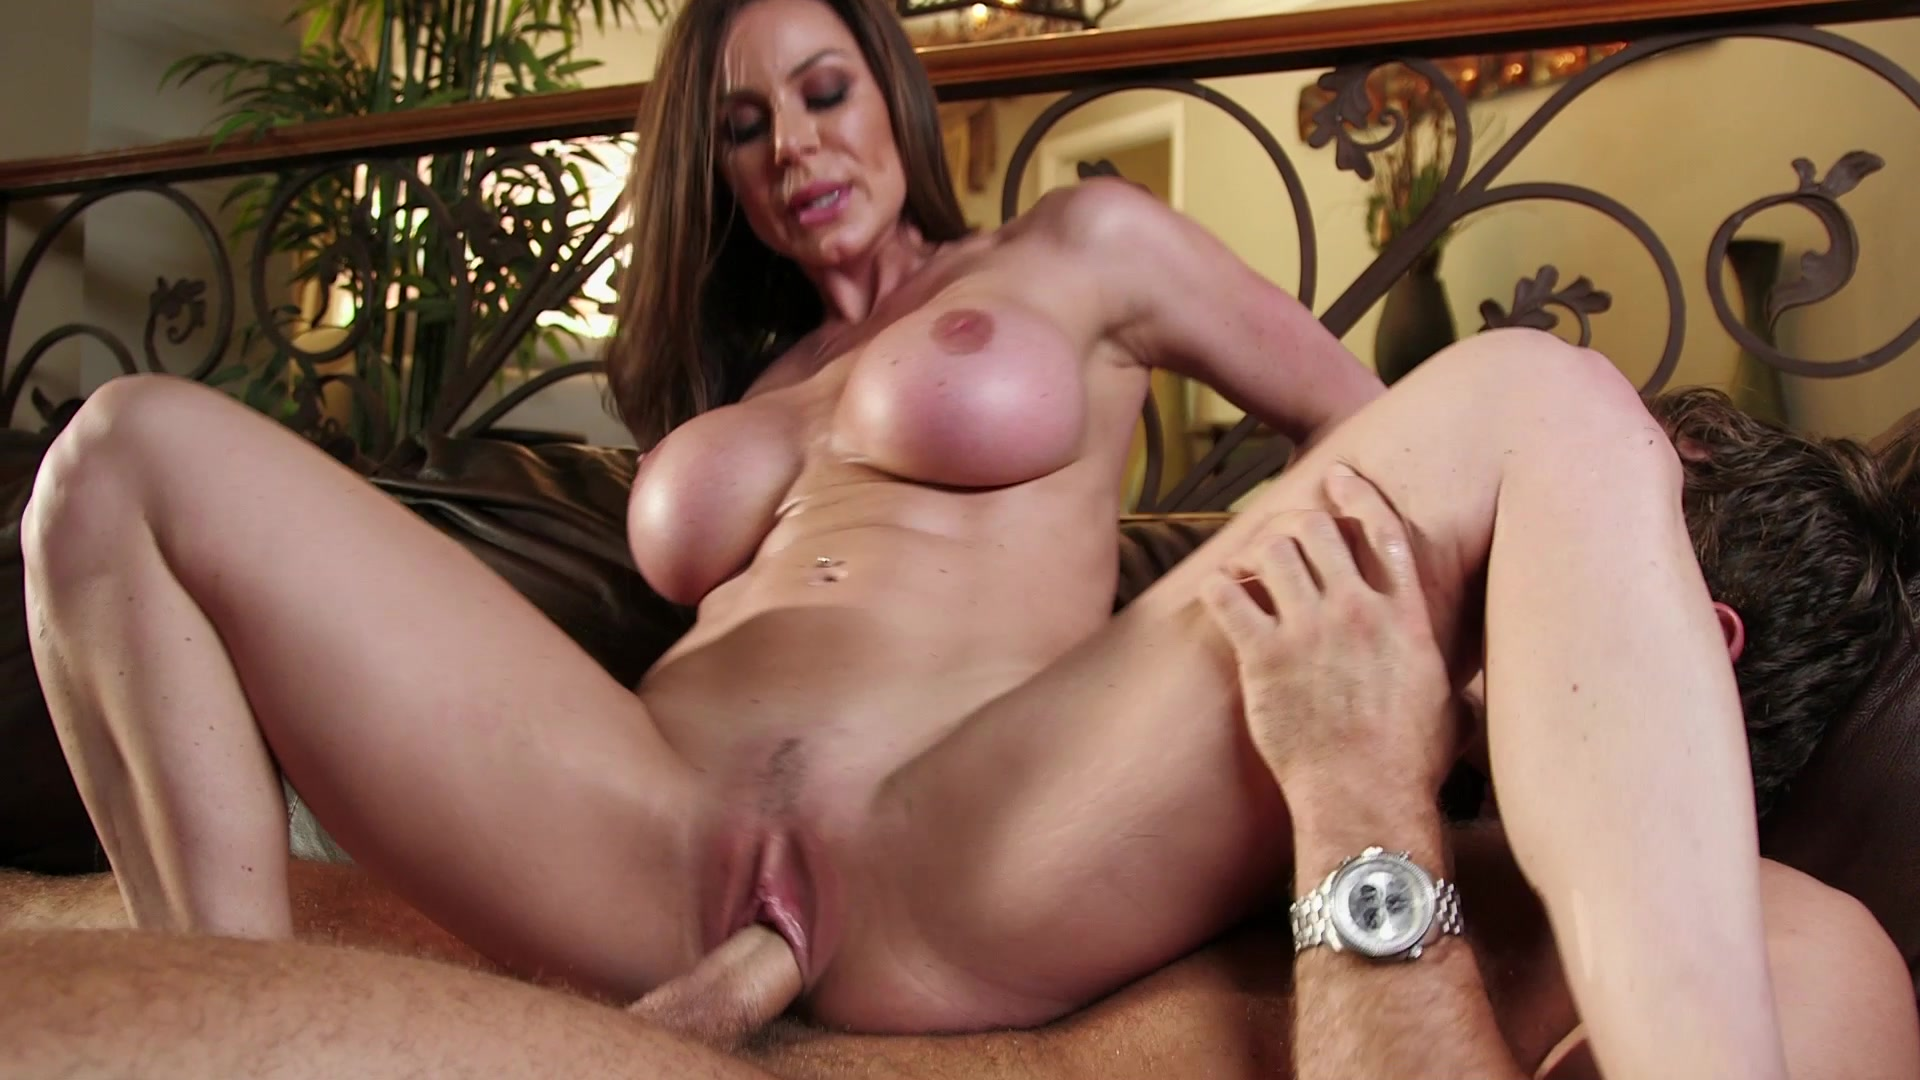 Hot mom busty sex, bonnie swanson sex